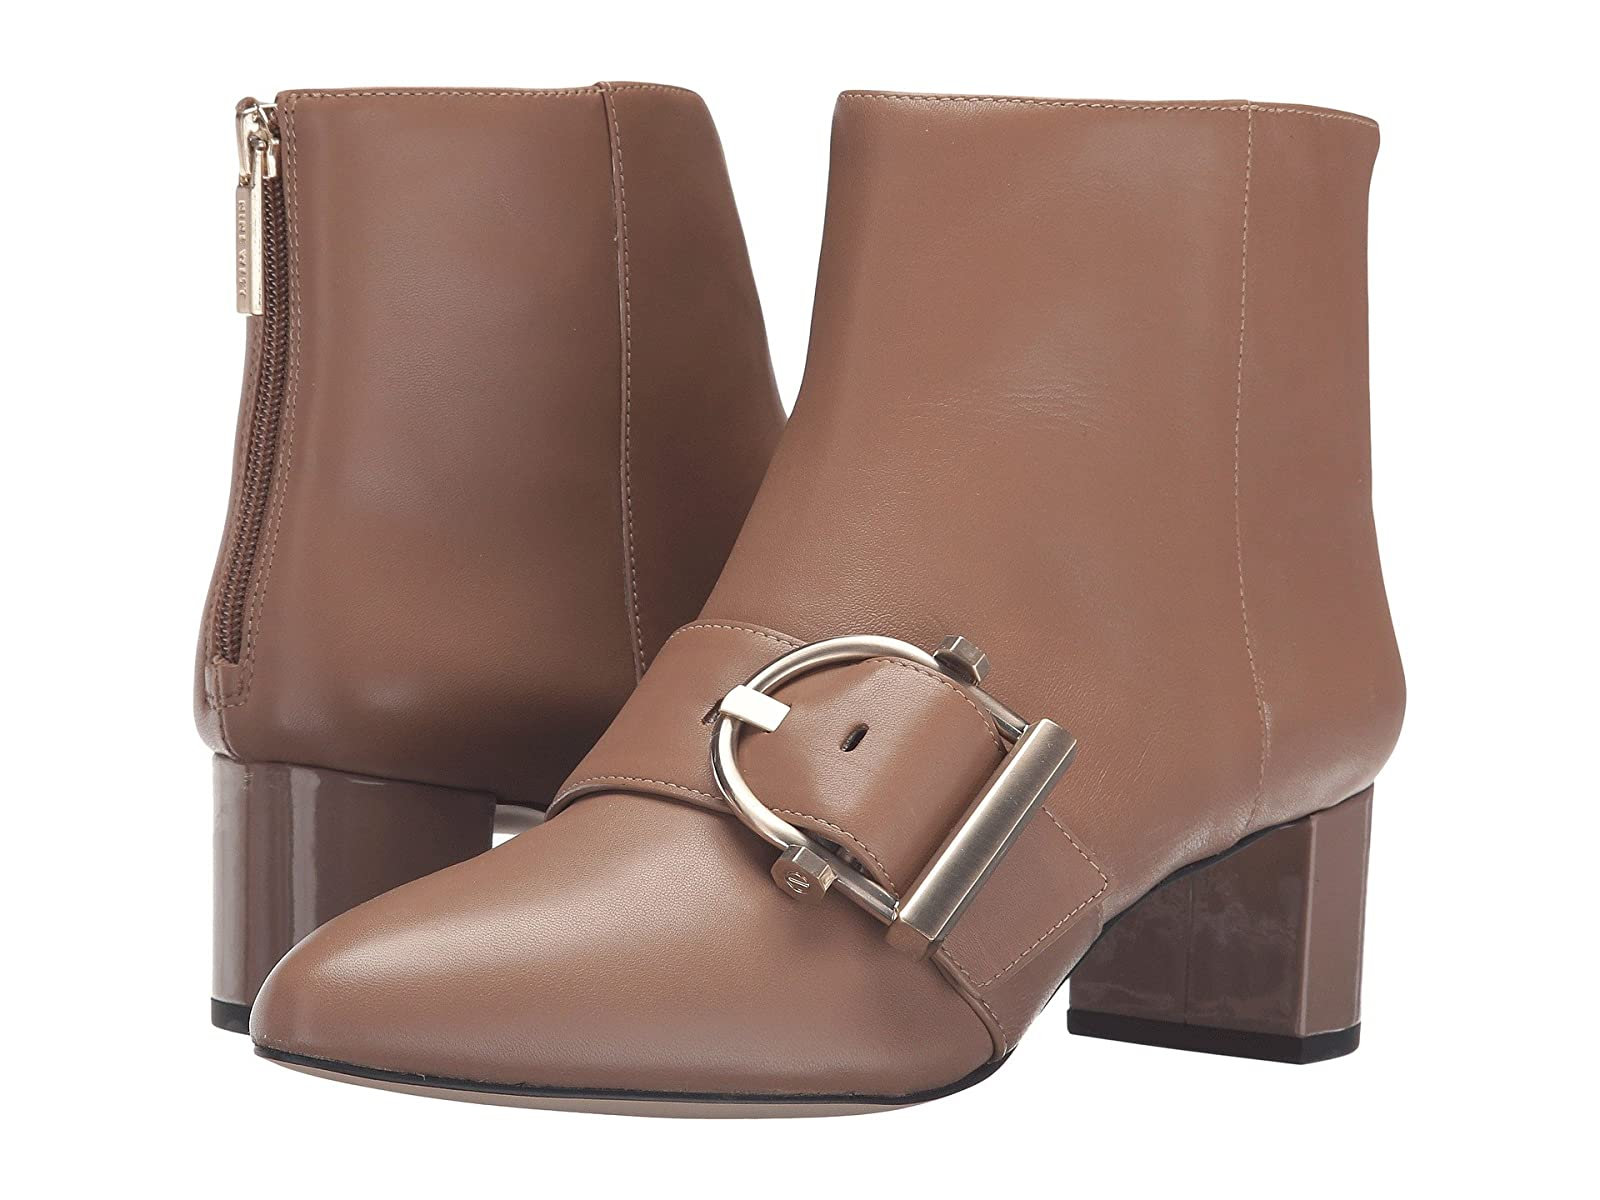 Nine West KonahCheap and distinctive eye-catching shoes